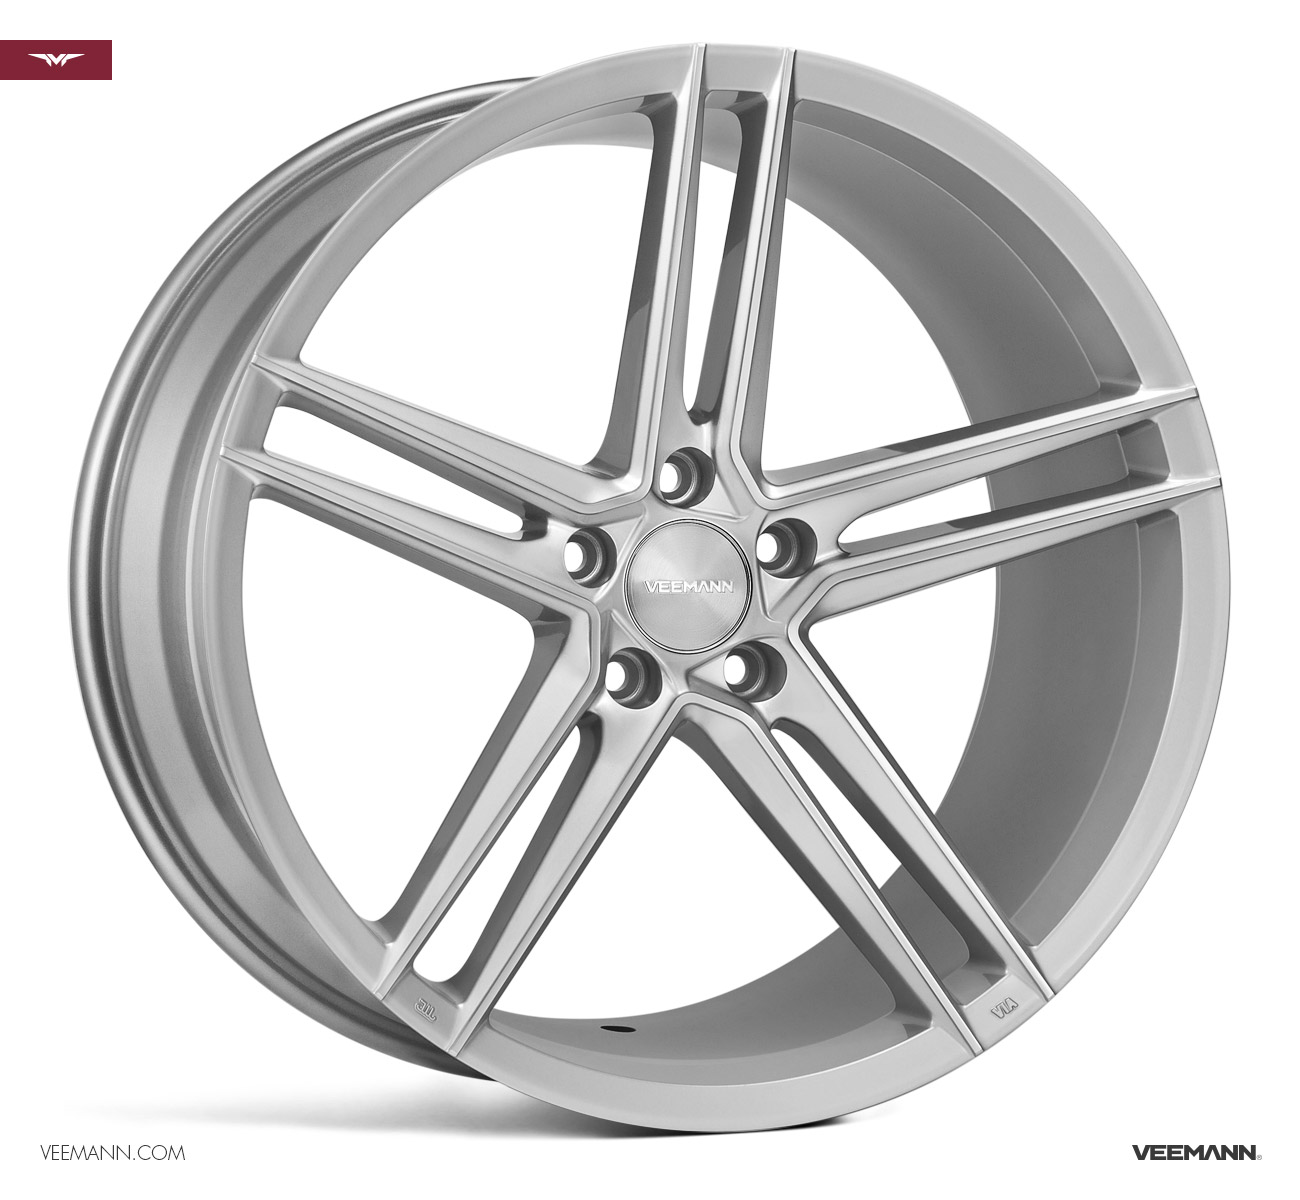 "NEW 19"" VEEMANN V-FS33 ALLOY WHEELS IN SILVER POL WITH WIDER 9.5"" REARS"